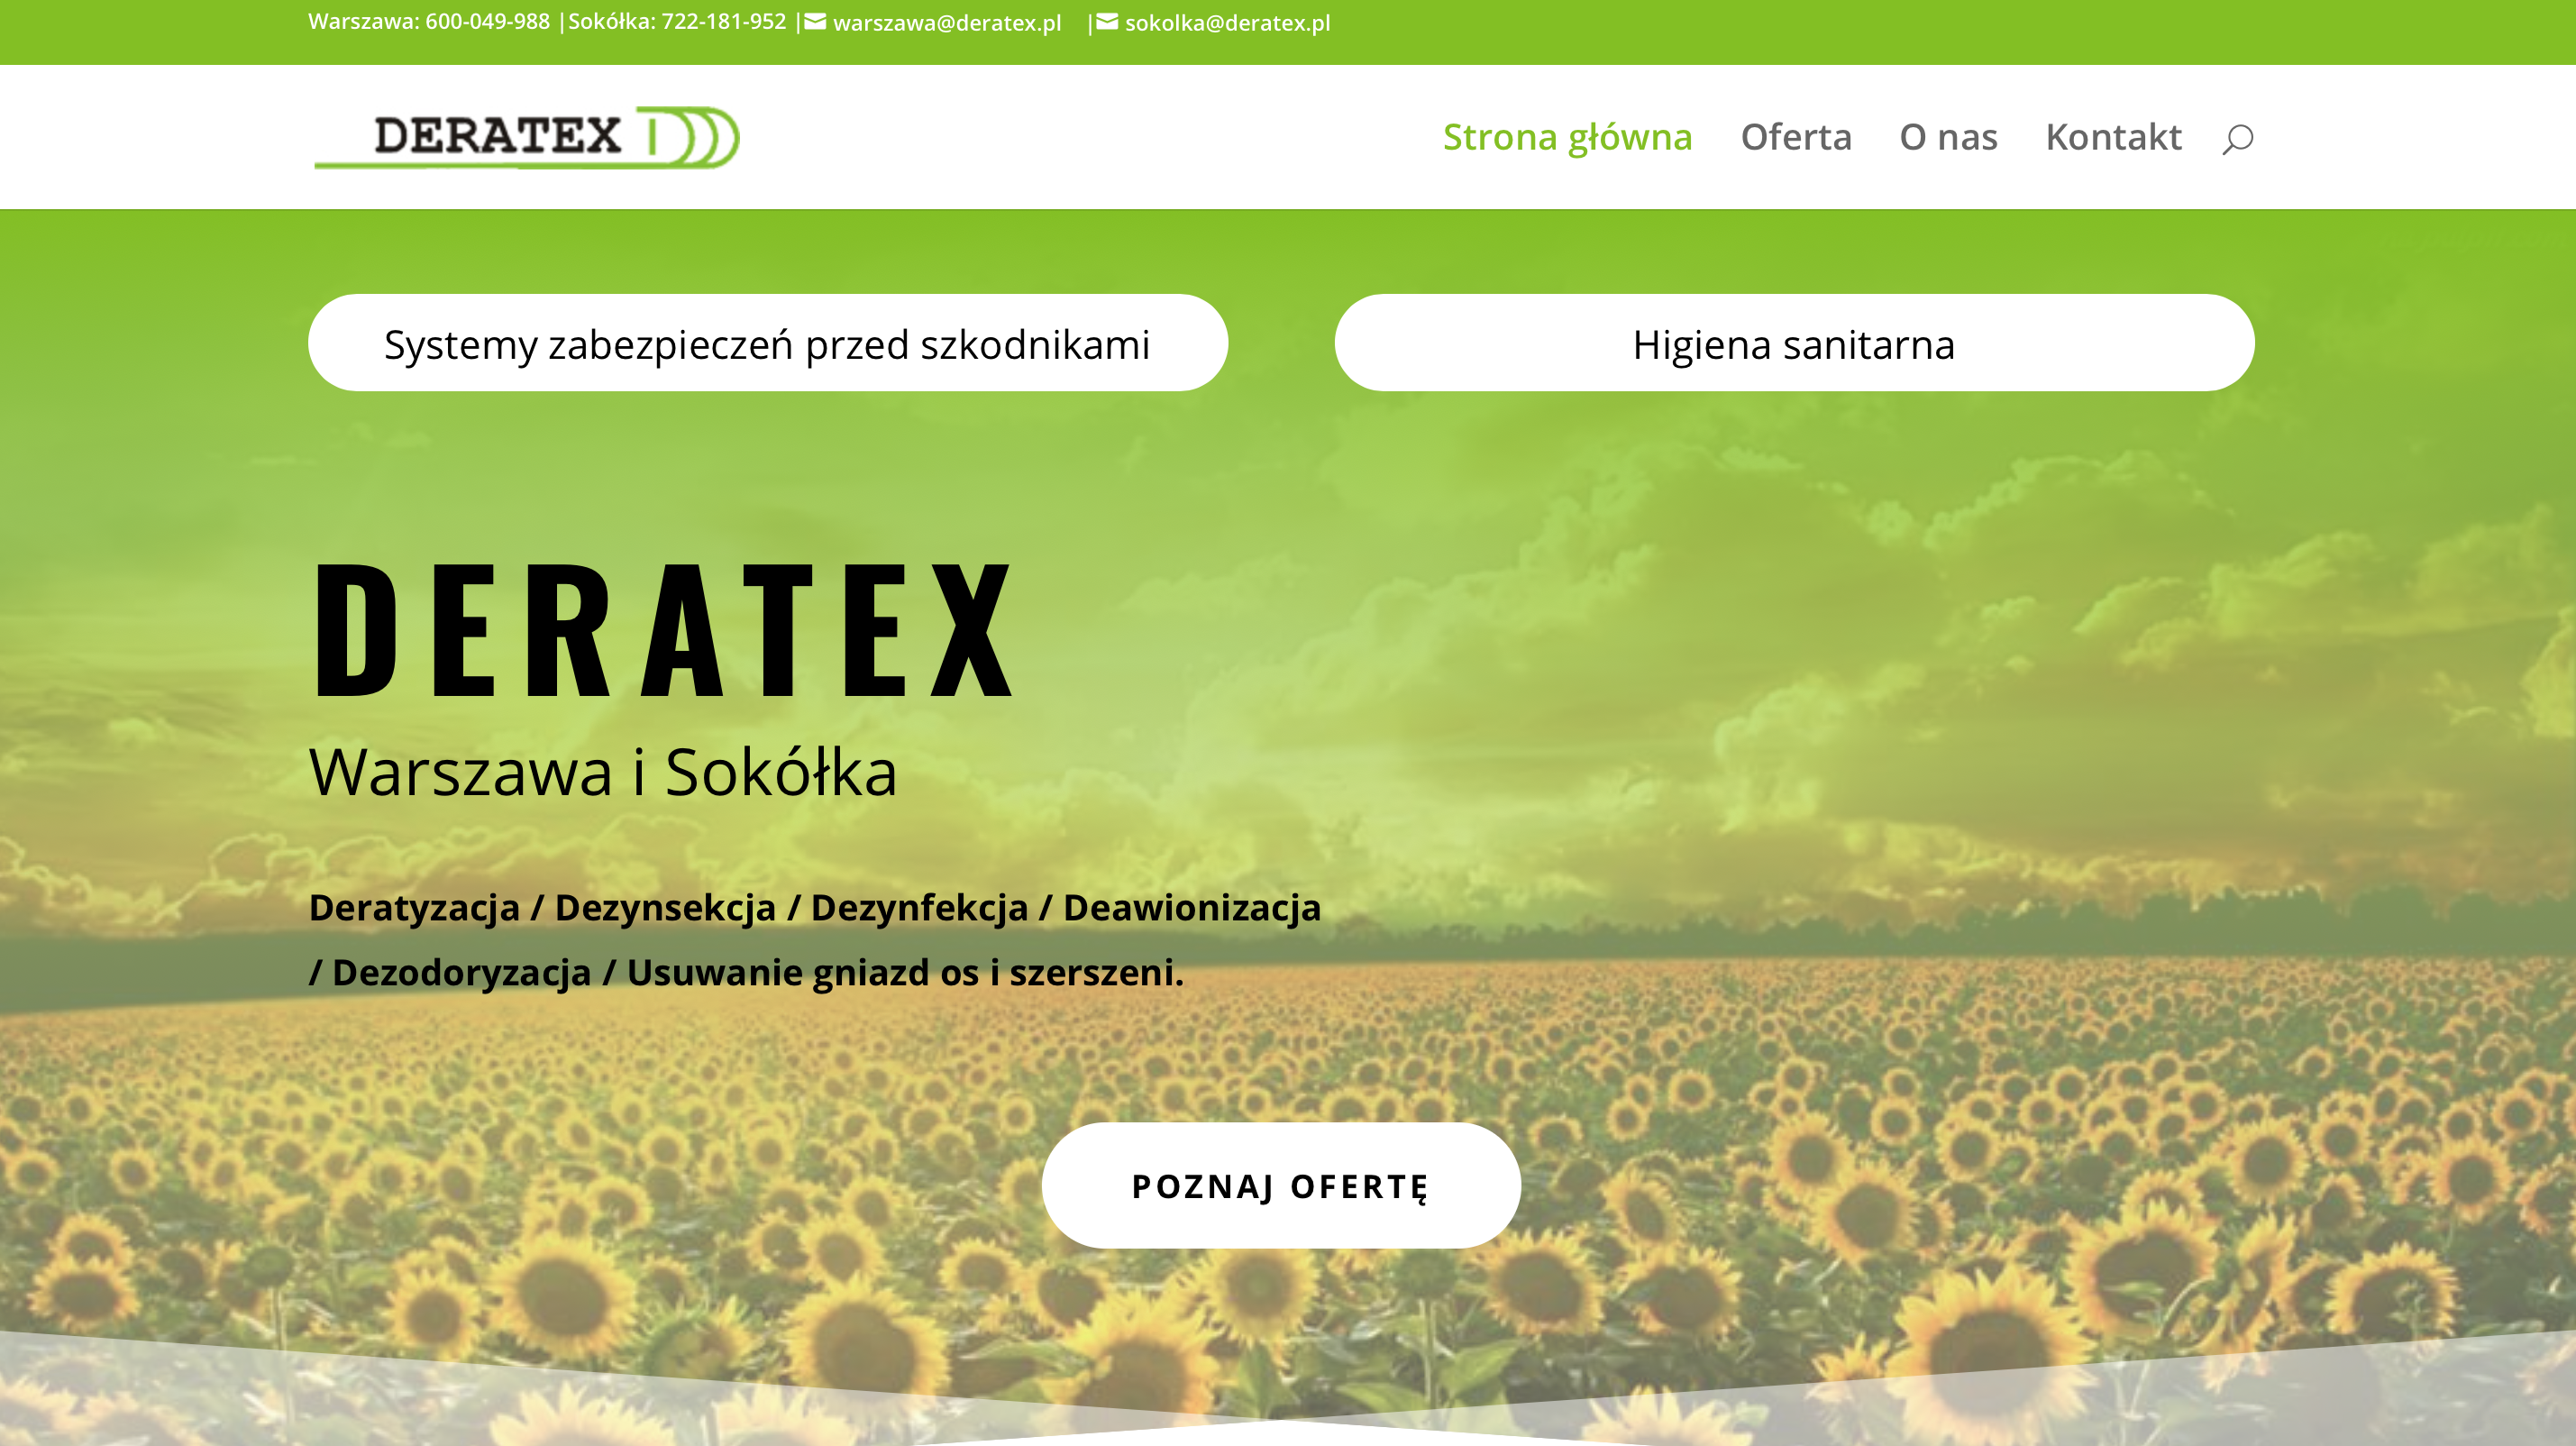 deratex